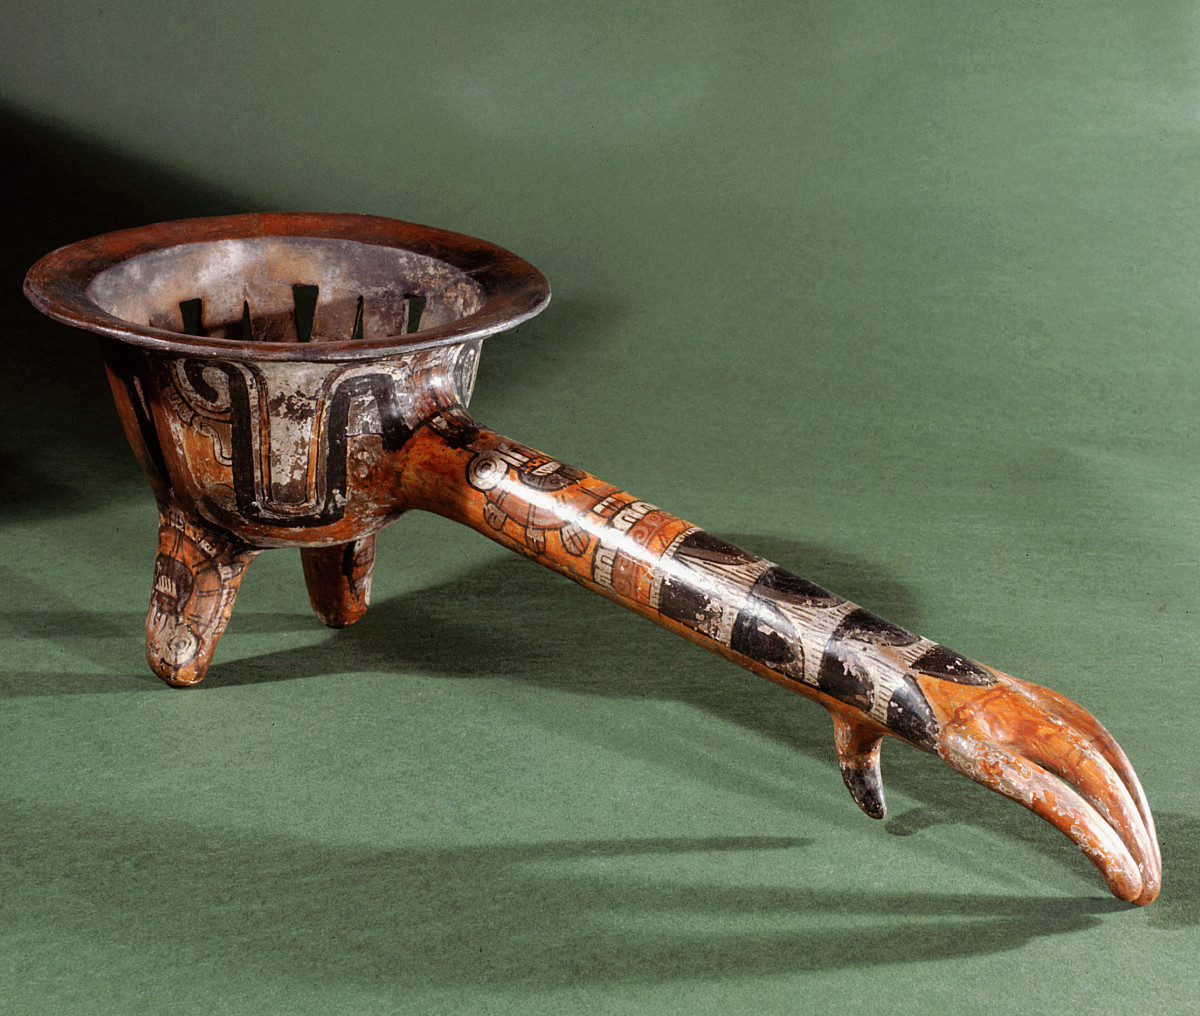 An Aztec incense burner, the handle in the form of Tezcatlipoca, the turkey claw.